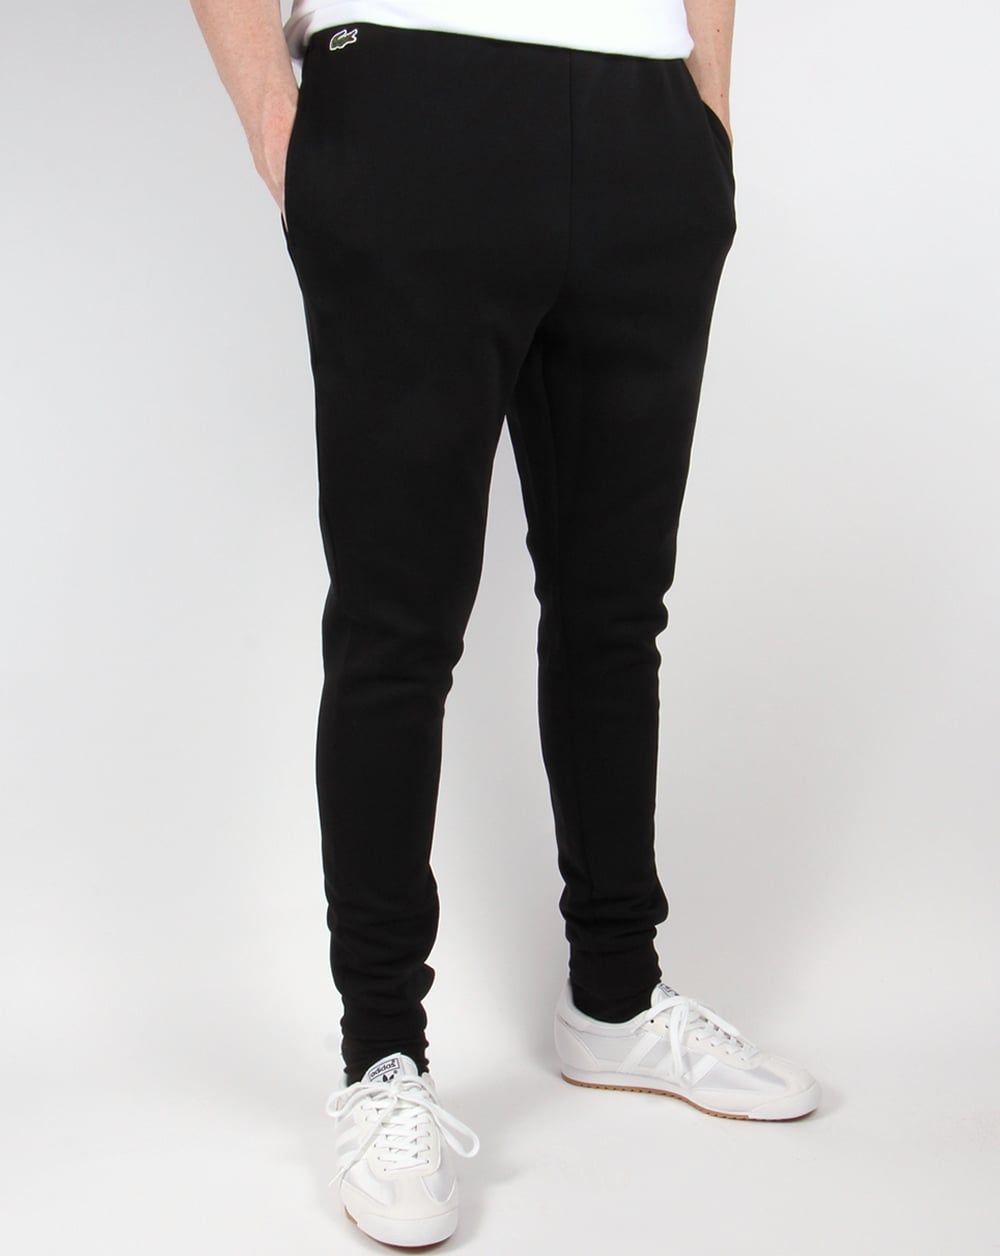 Lacoste Double Faced Track Pants Black Jogging Bottoms